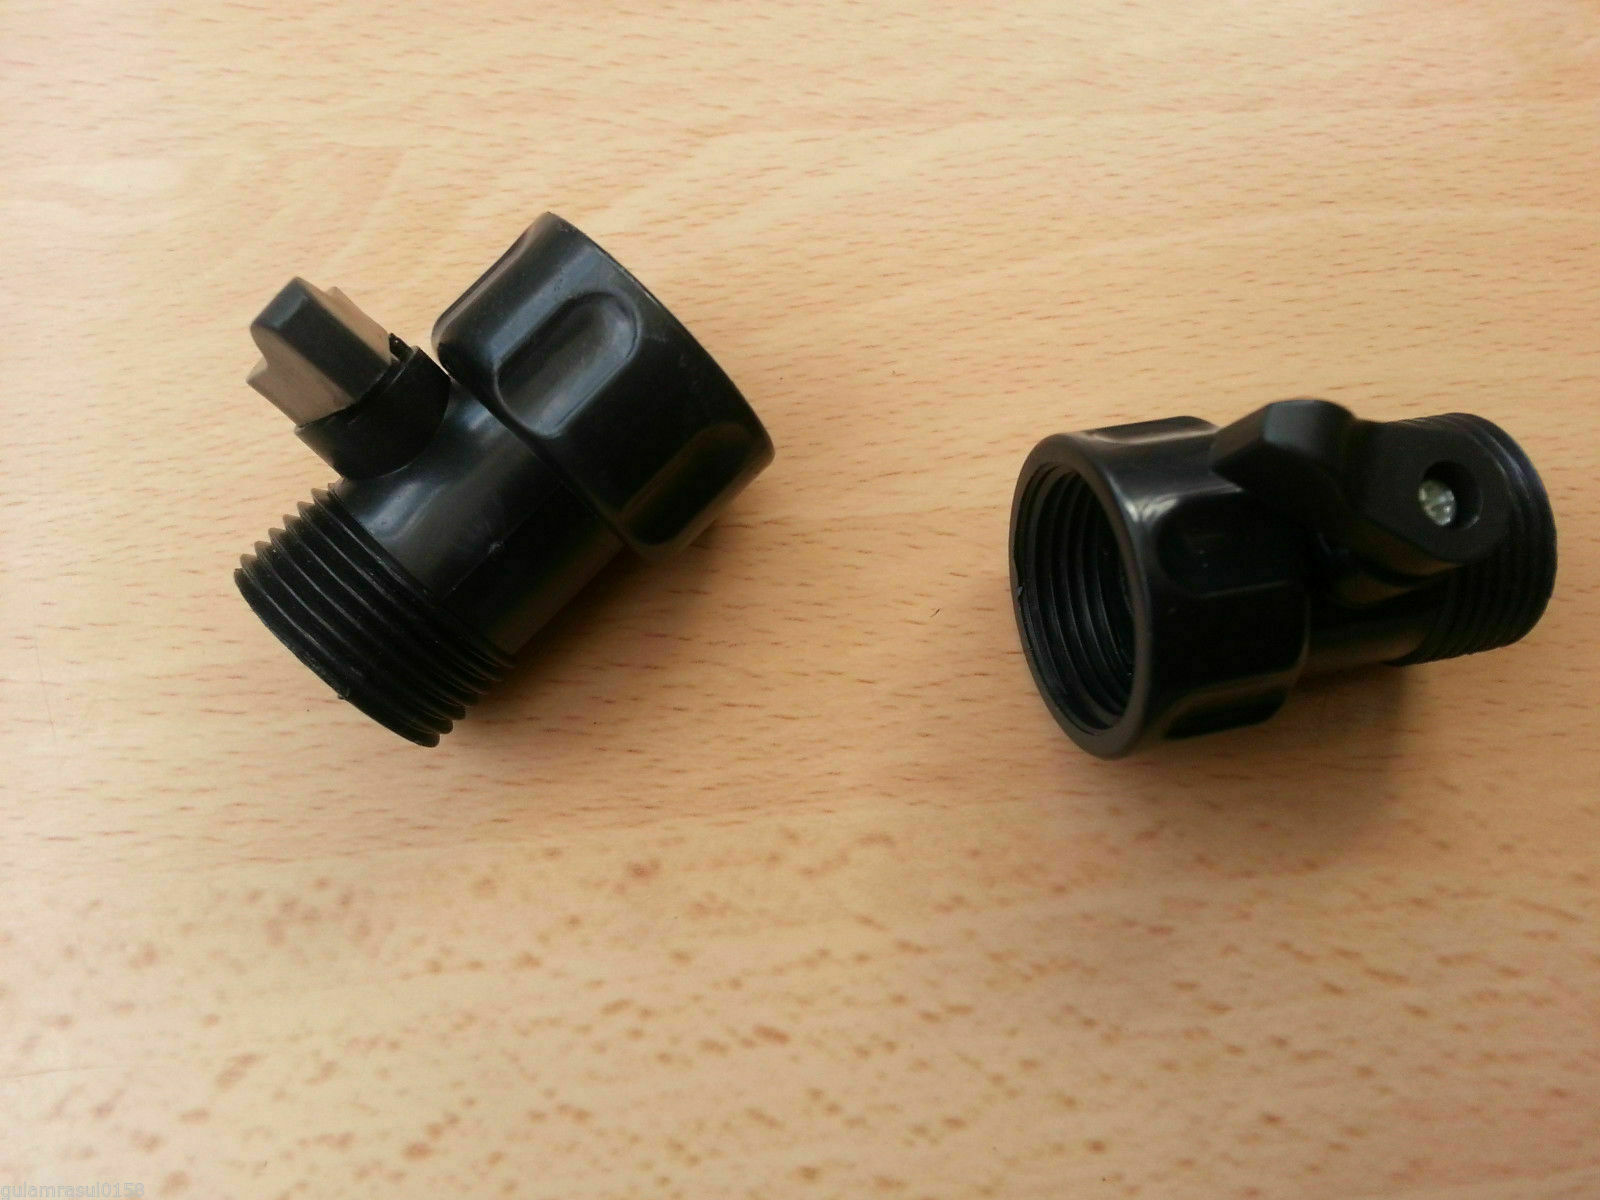 1x hose On/Off Water Valve Connector For Garden On/Off Water Expandable****